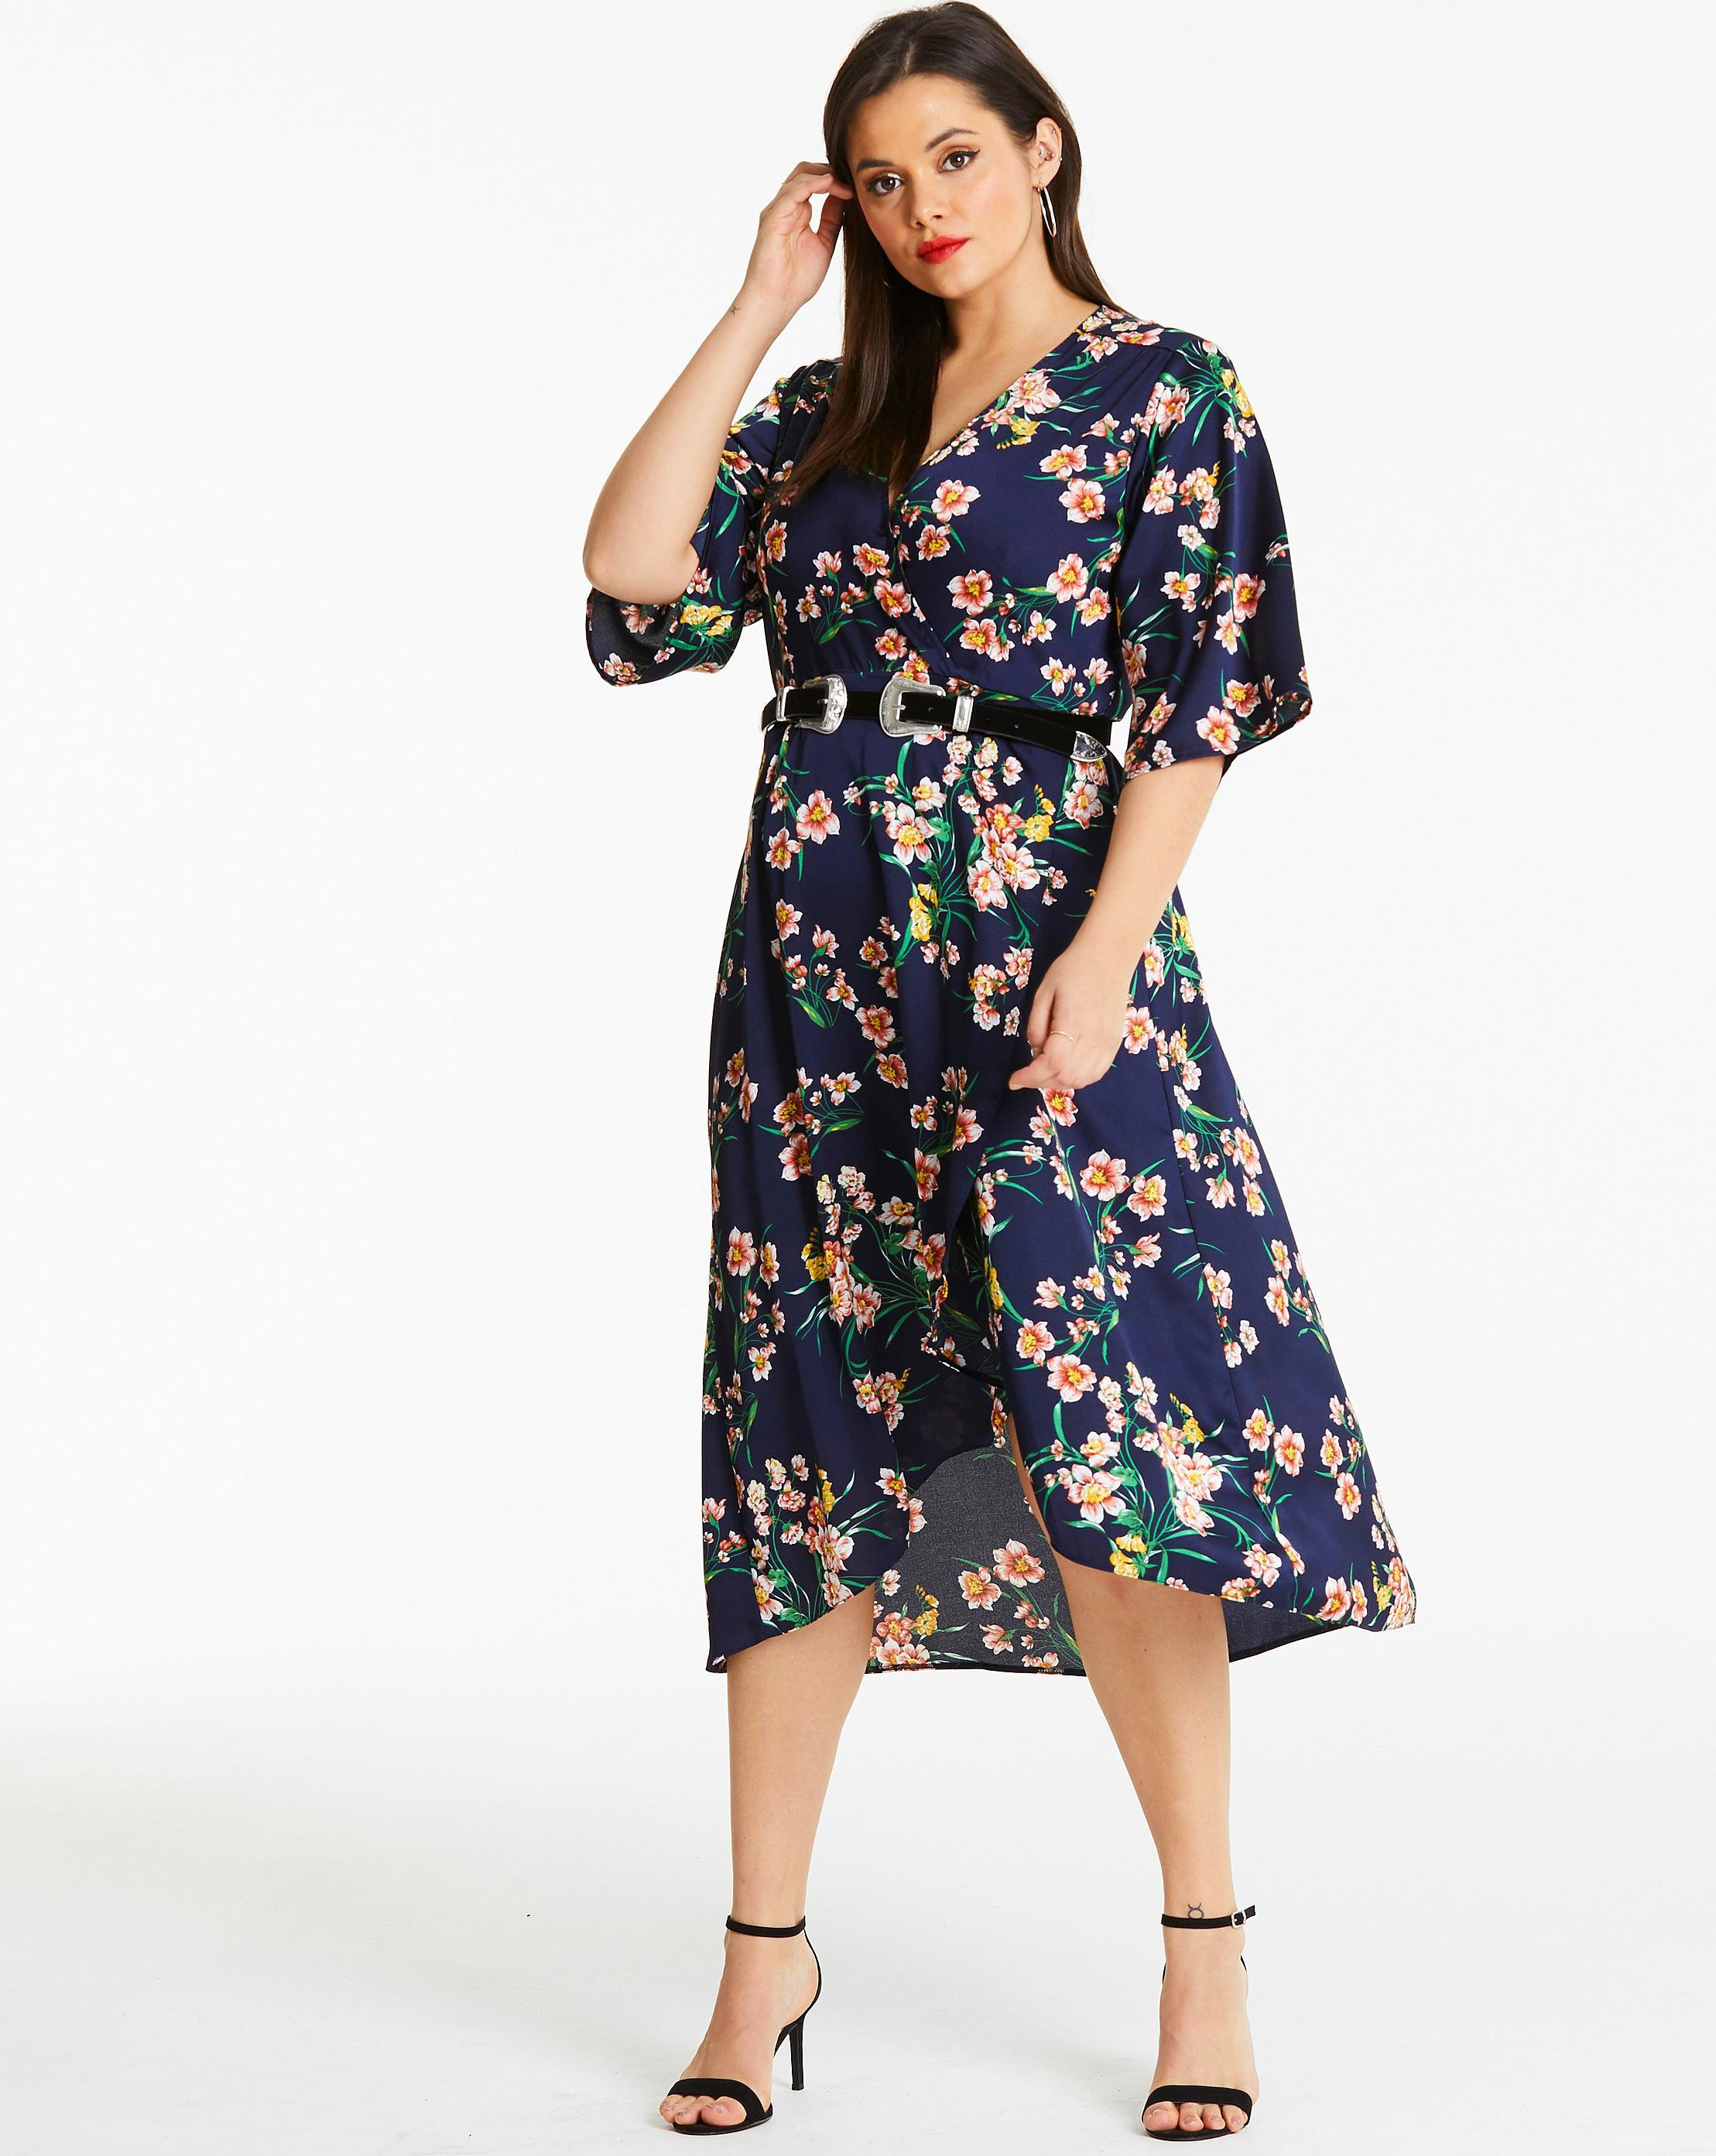 Lyst - Simply Be Ax Paris Floral Satin Wrap Dress in Blue 7a091f093